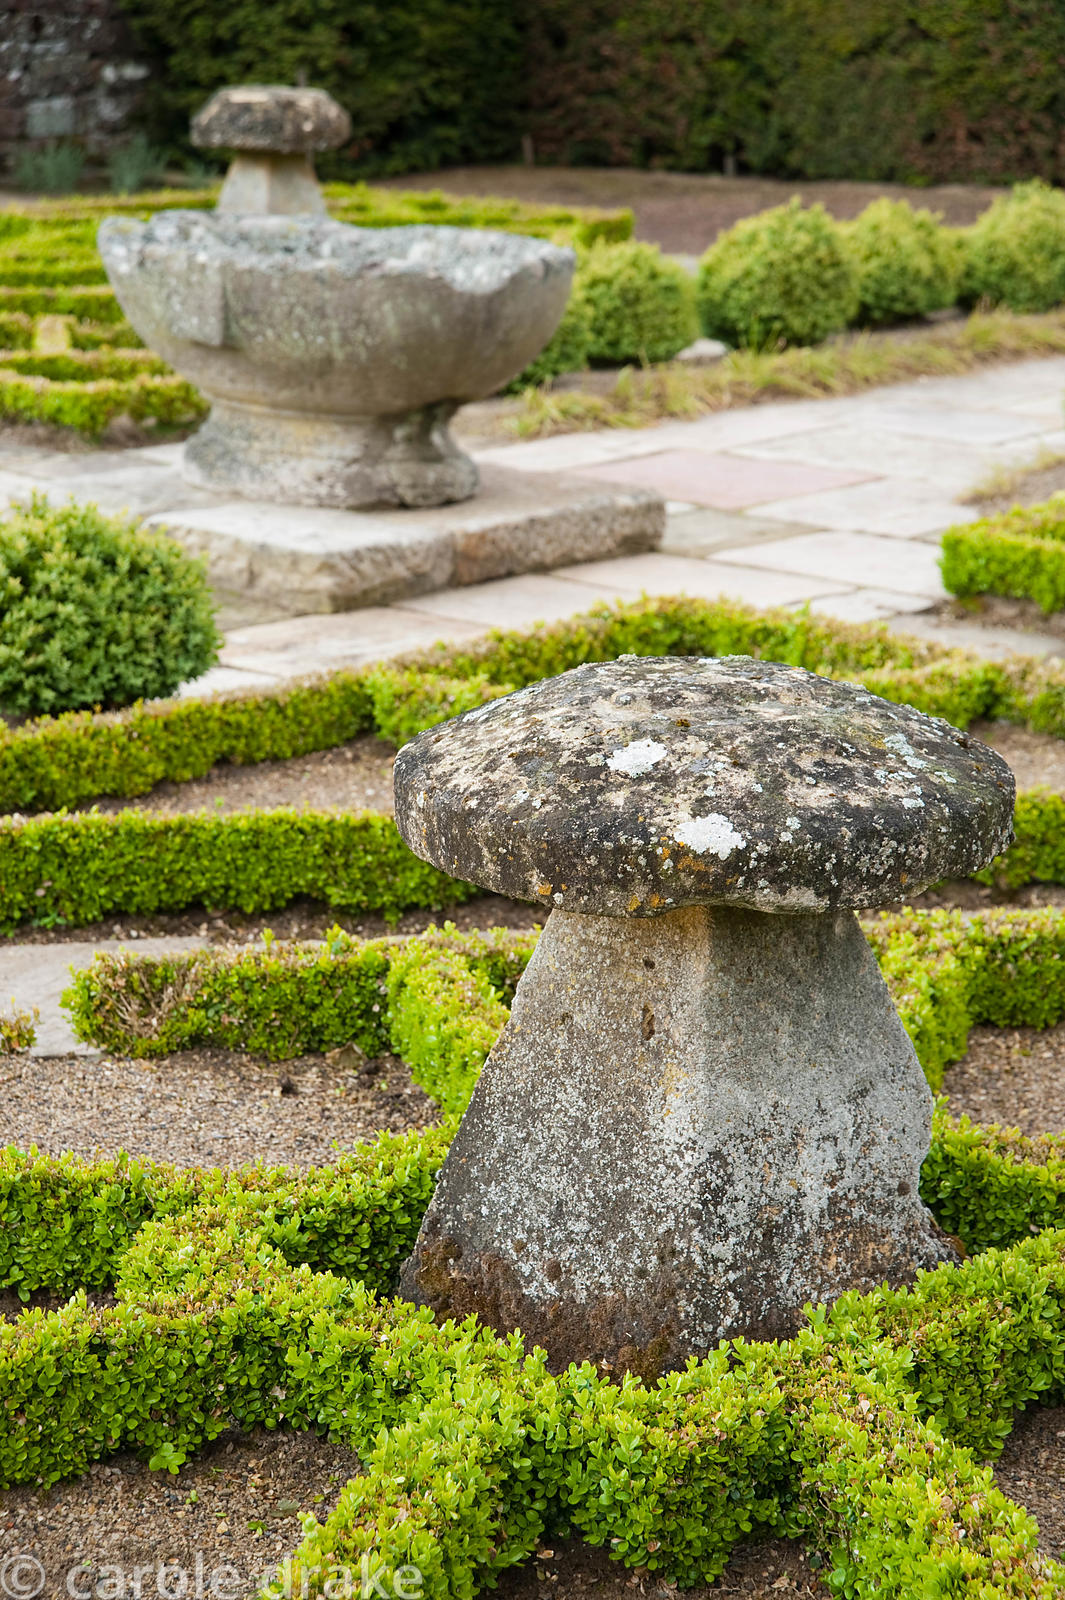 The Fancy Garden includes staddle stones surrounded by clipped box in a pattern based on a Tudor rose pattern. Herterton Hous...